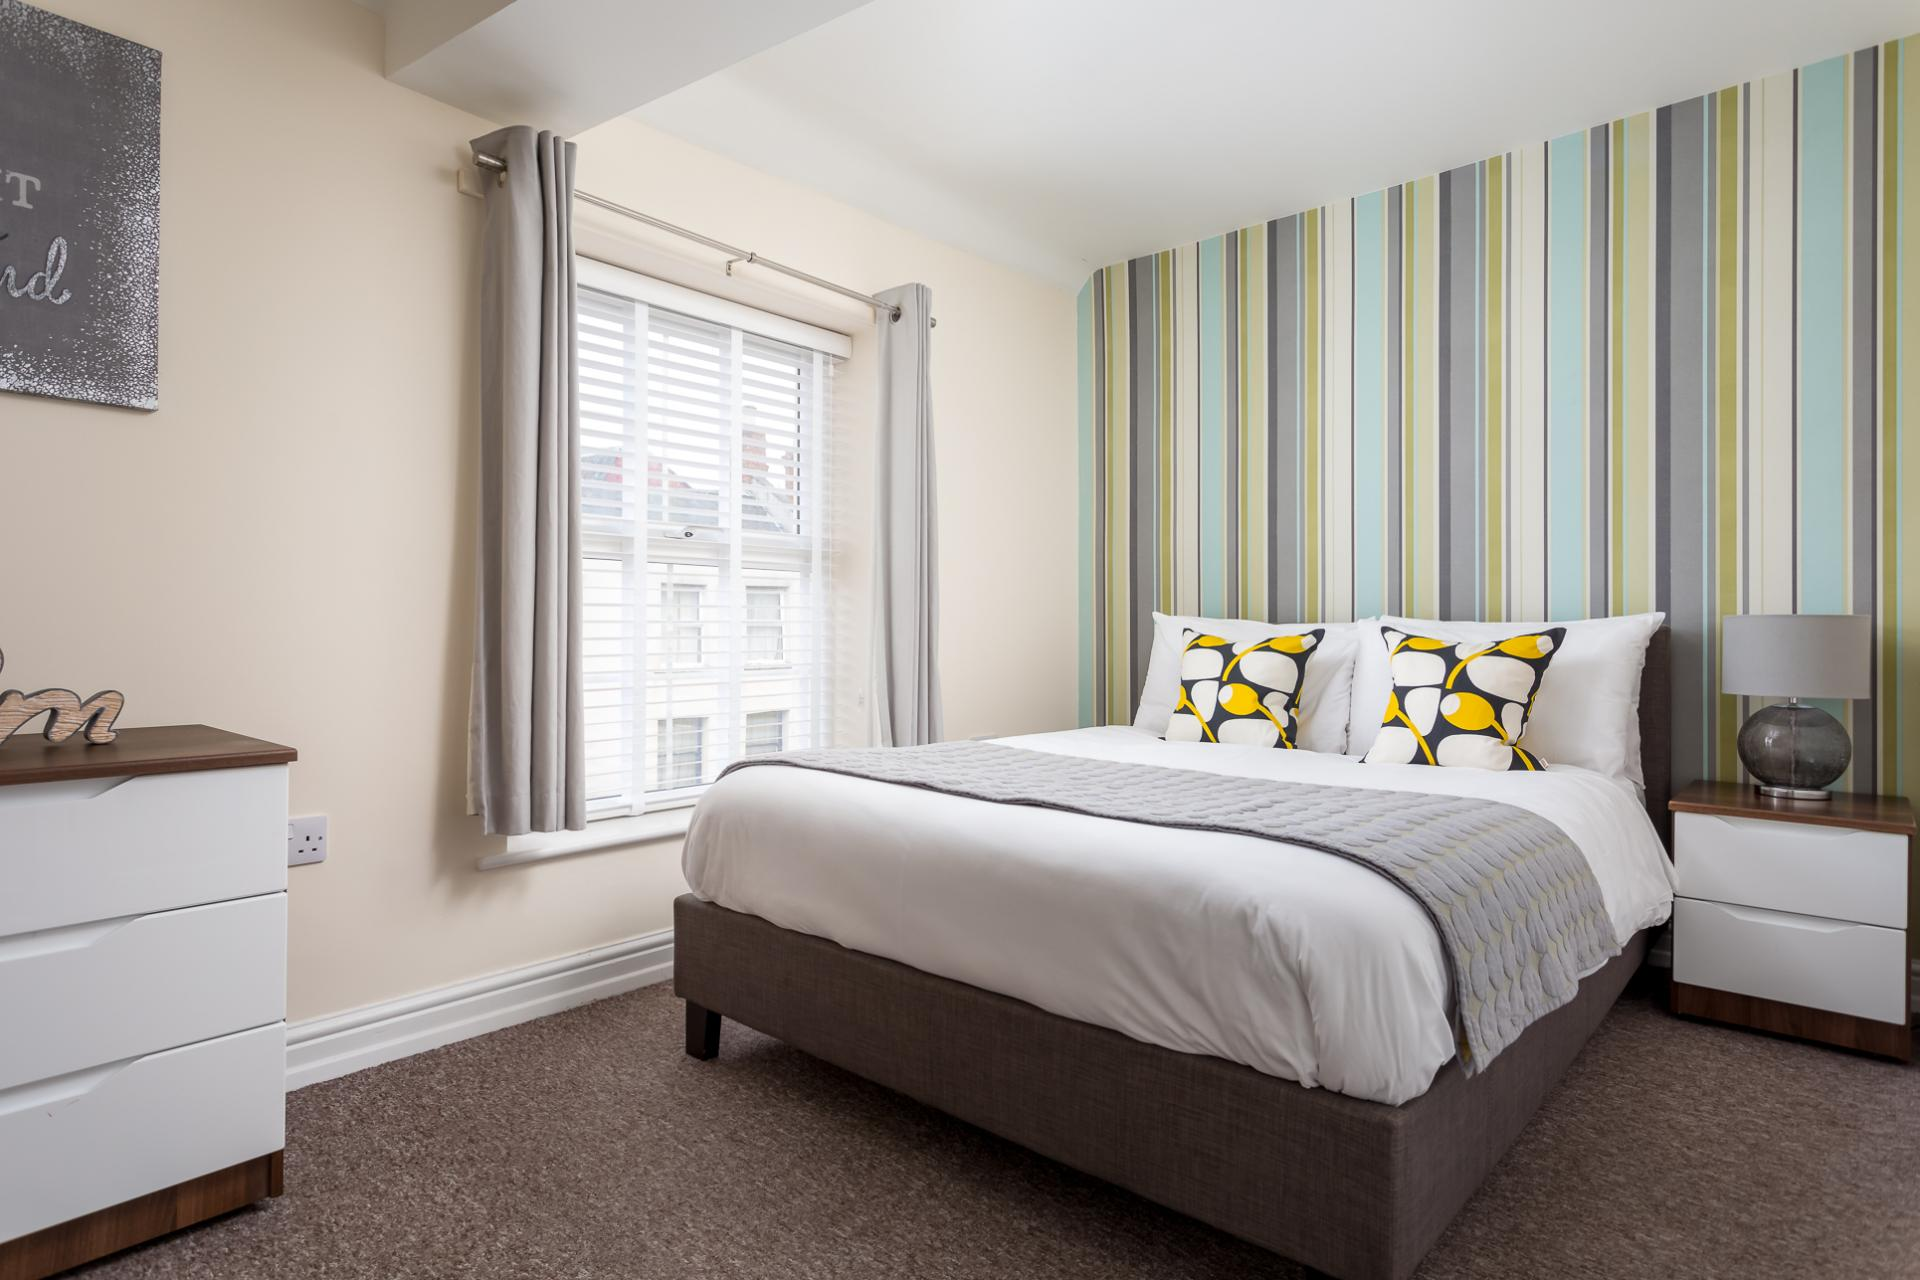 Bedroom 1 at High Street Serviced Apartment